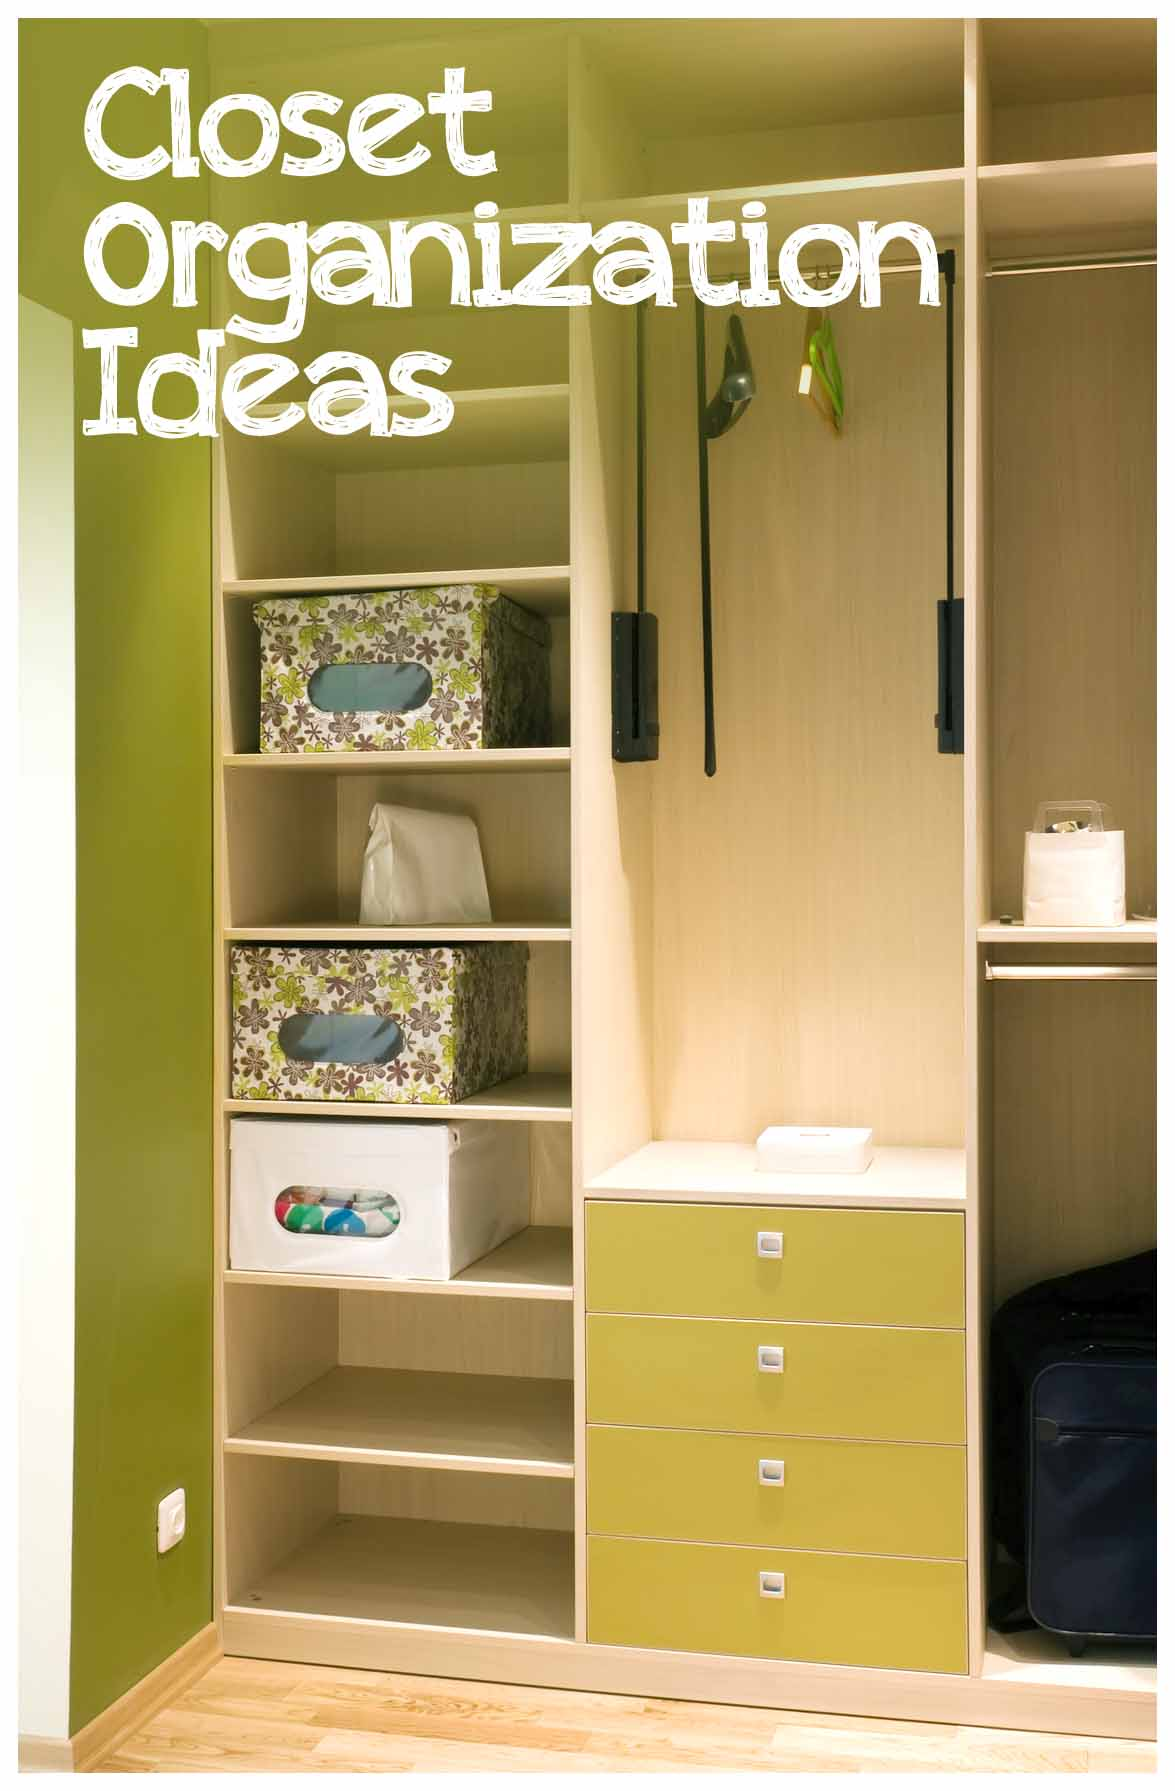 Home Organization Ideas For Small Spaces | Homes Tips Zone